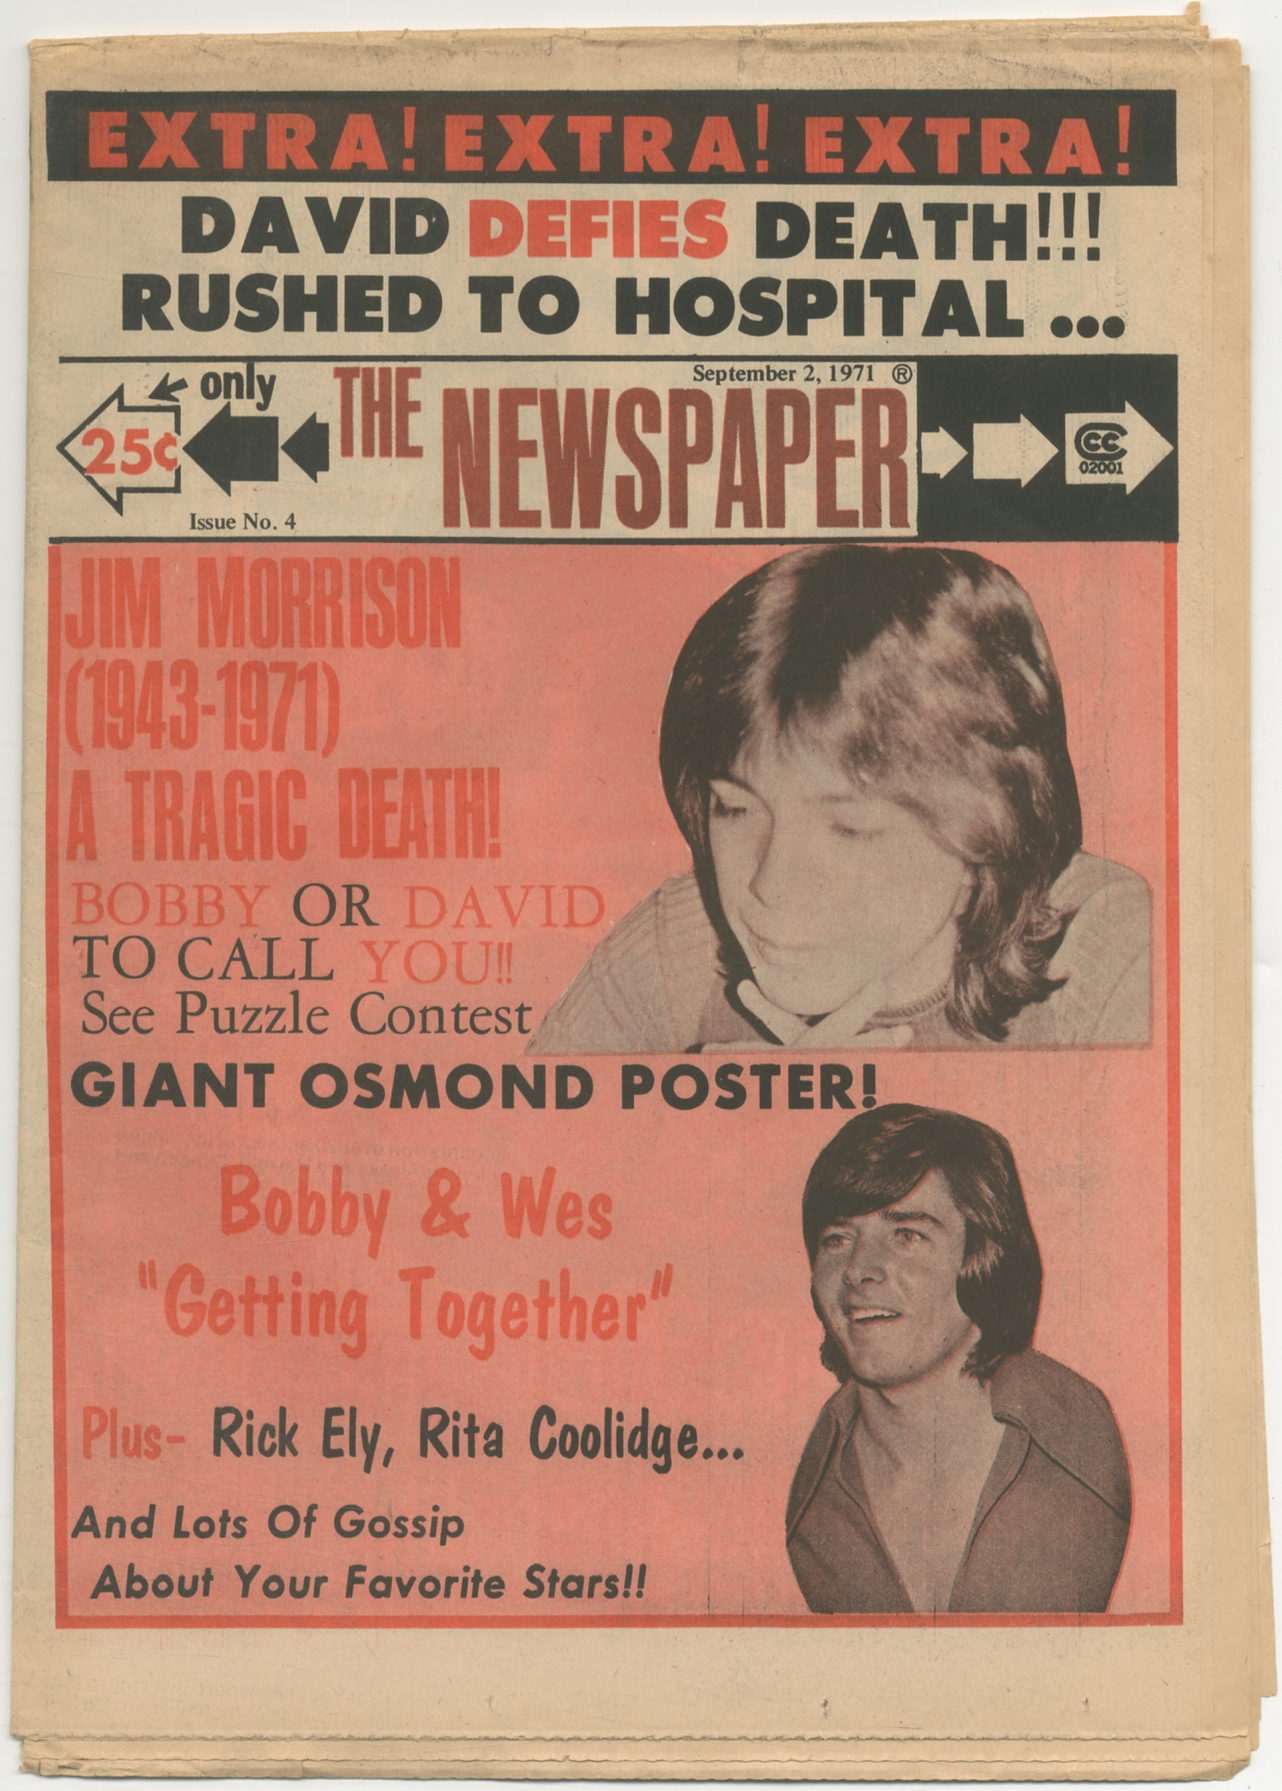 The Newspaper. Issue No. 4. September 2, 1971 Very Good Tabloid format fan newspaper. 16pp. Modest age-toning to the cheap newsprint, folded, probably as issued, very good. Teenybopper fan magazine with emp